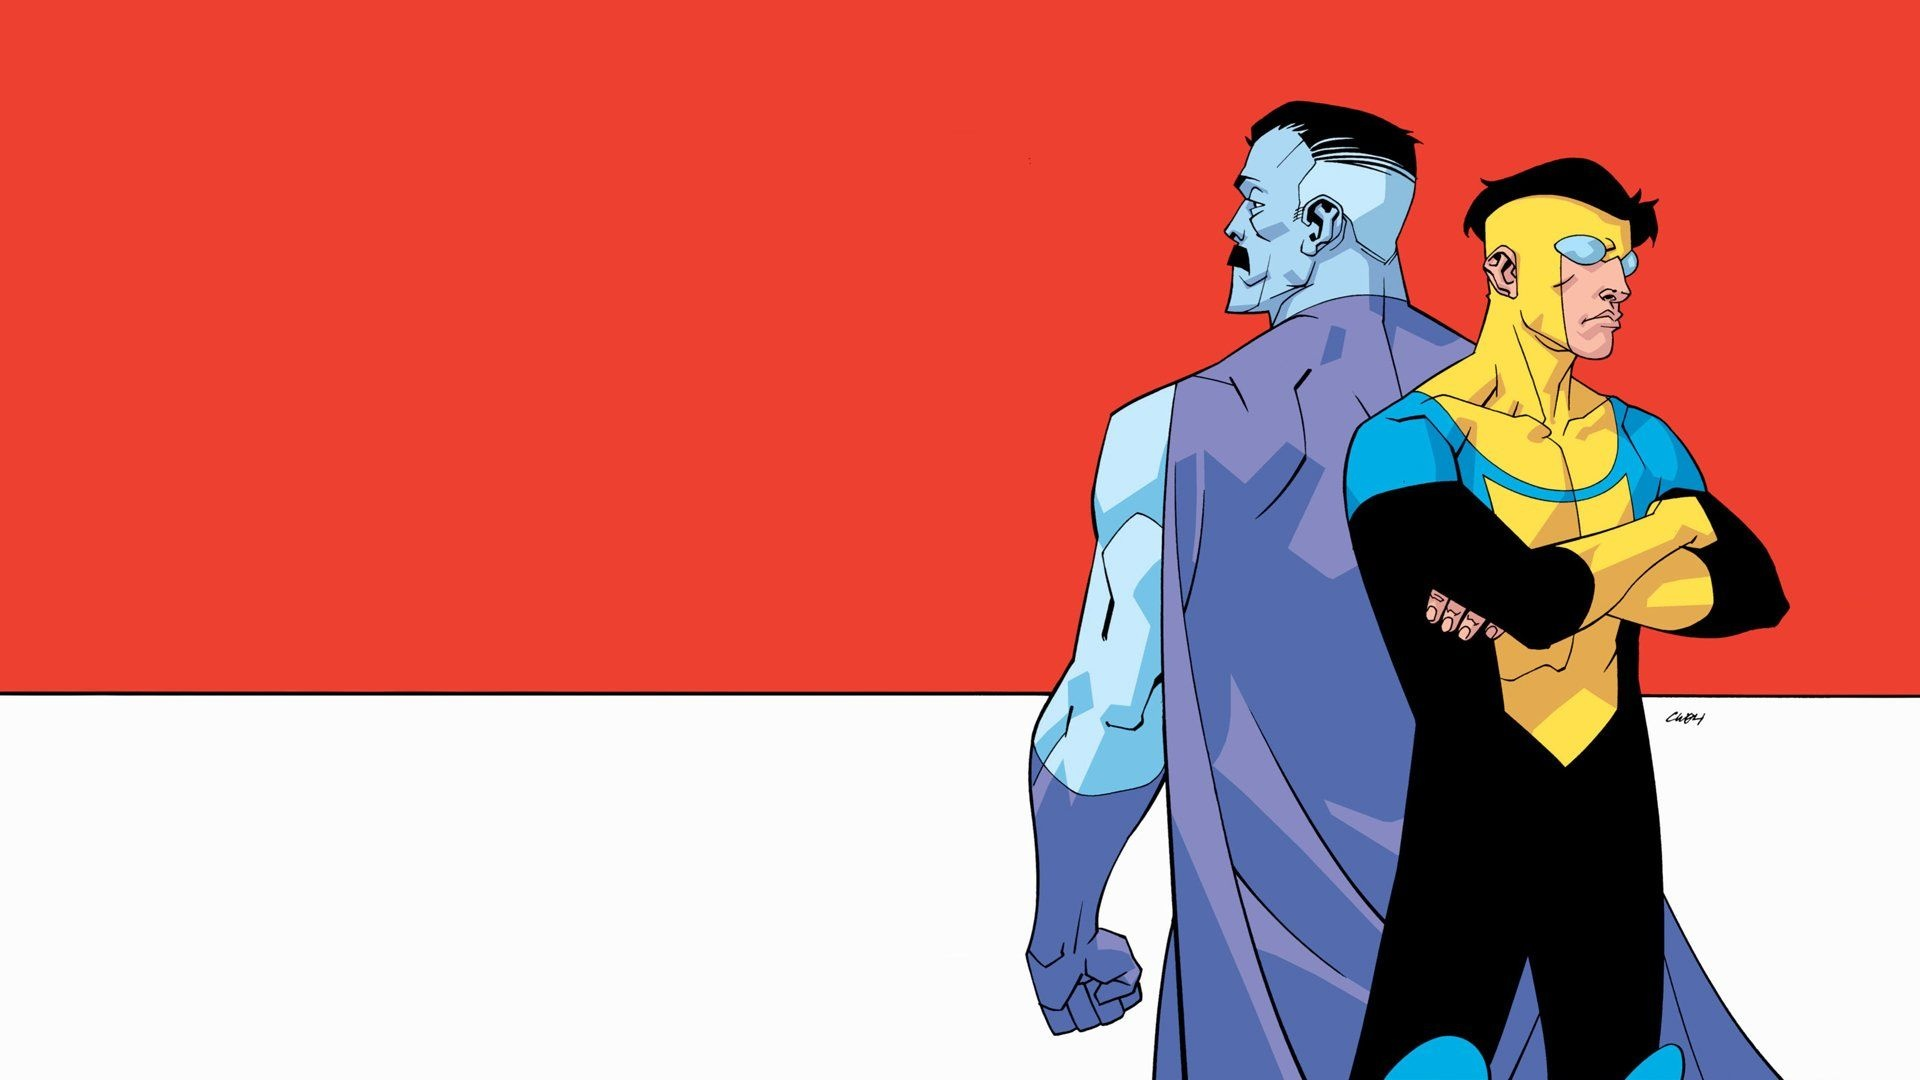 Invincible cool background